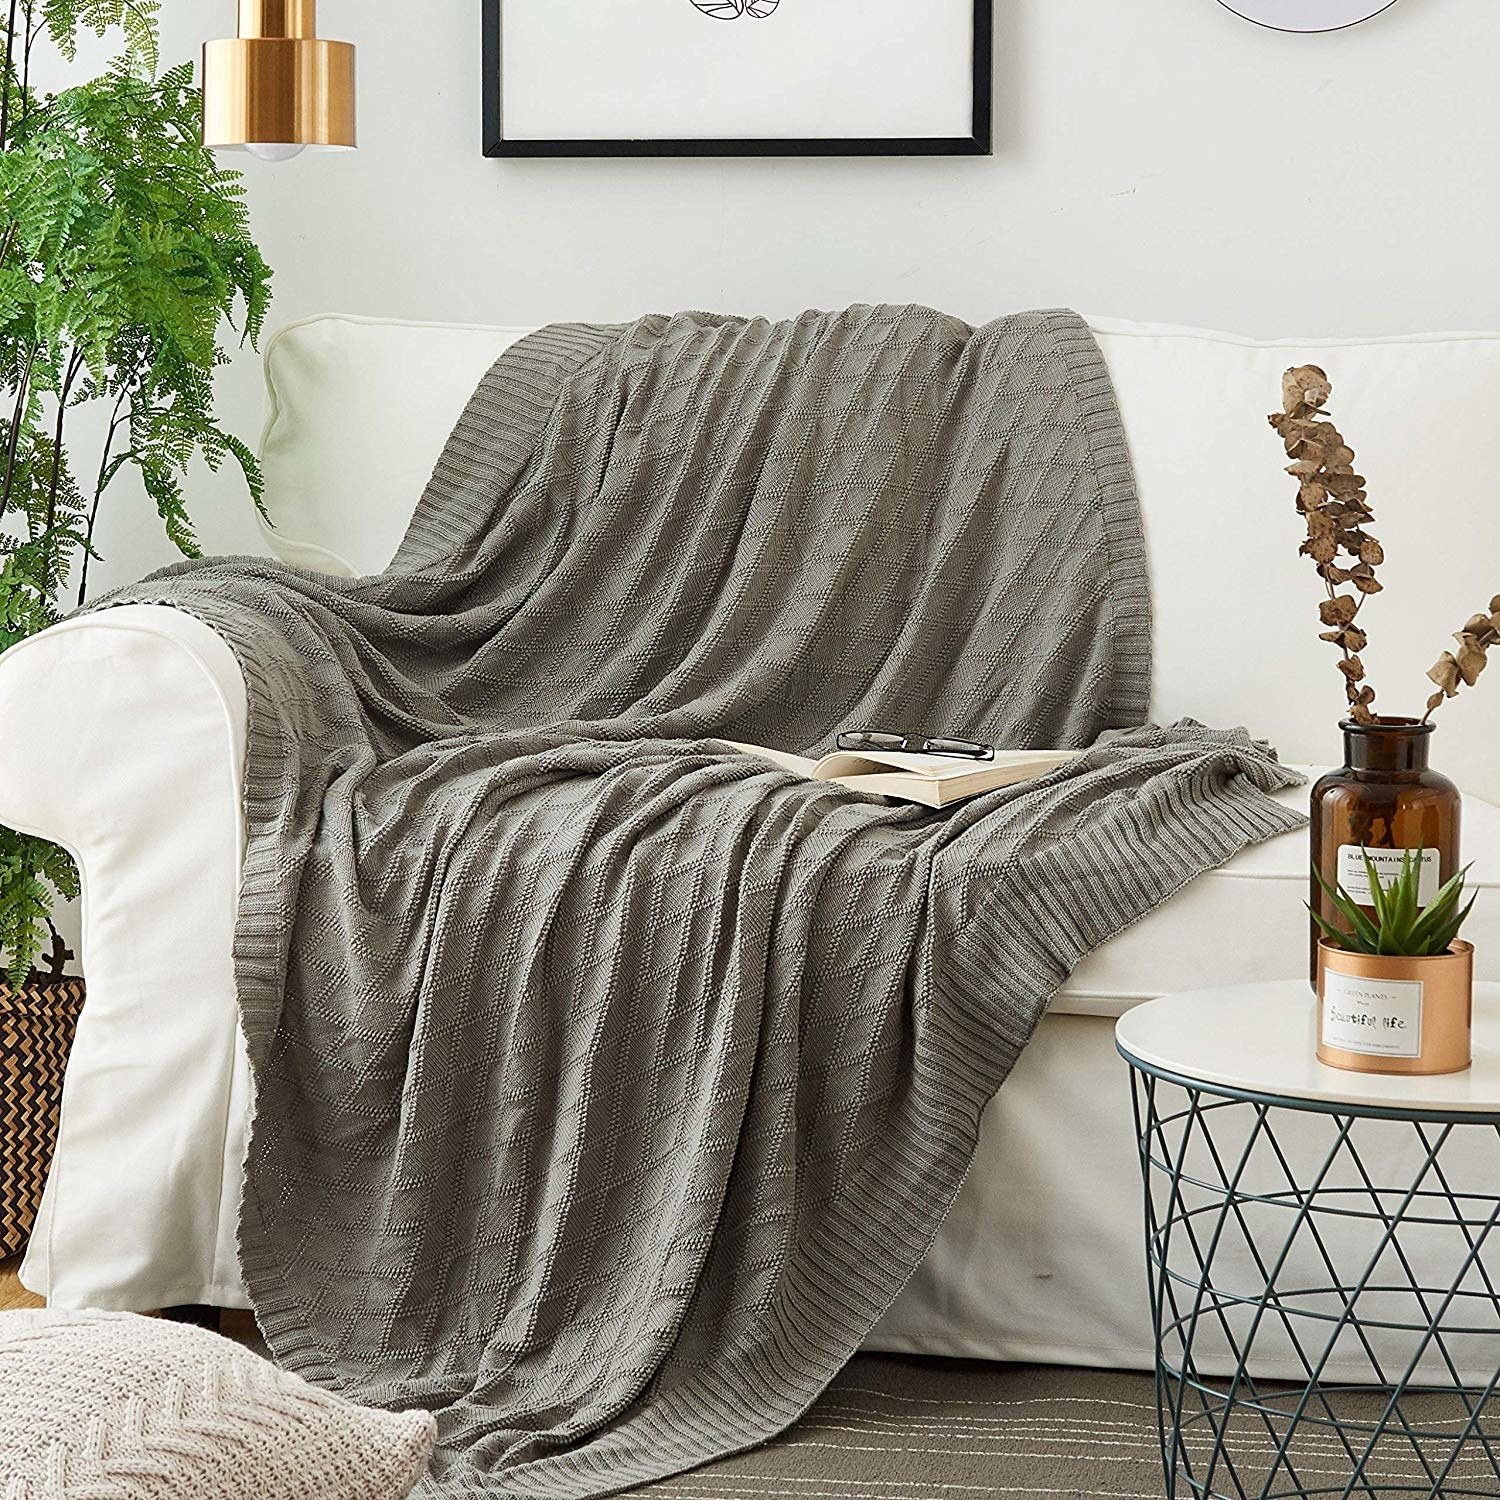 Cable-knit throw blanket over couch